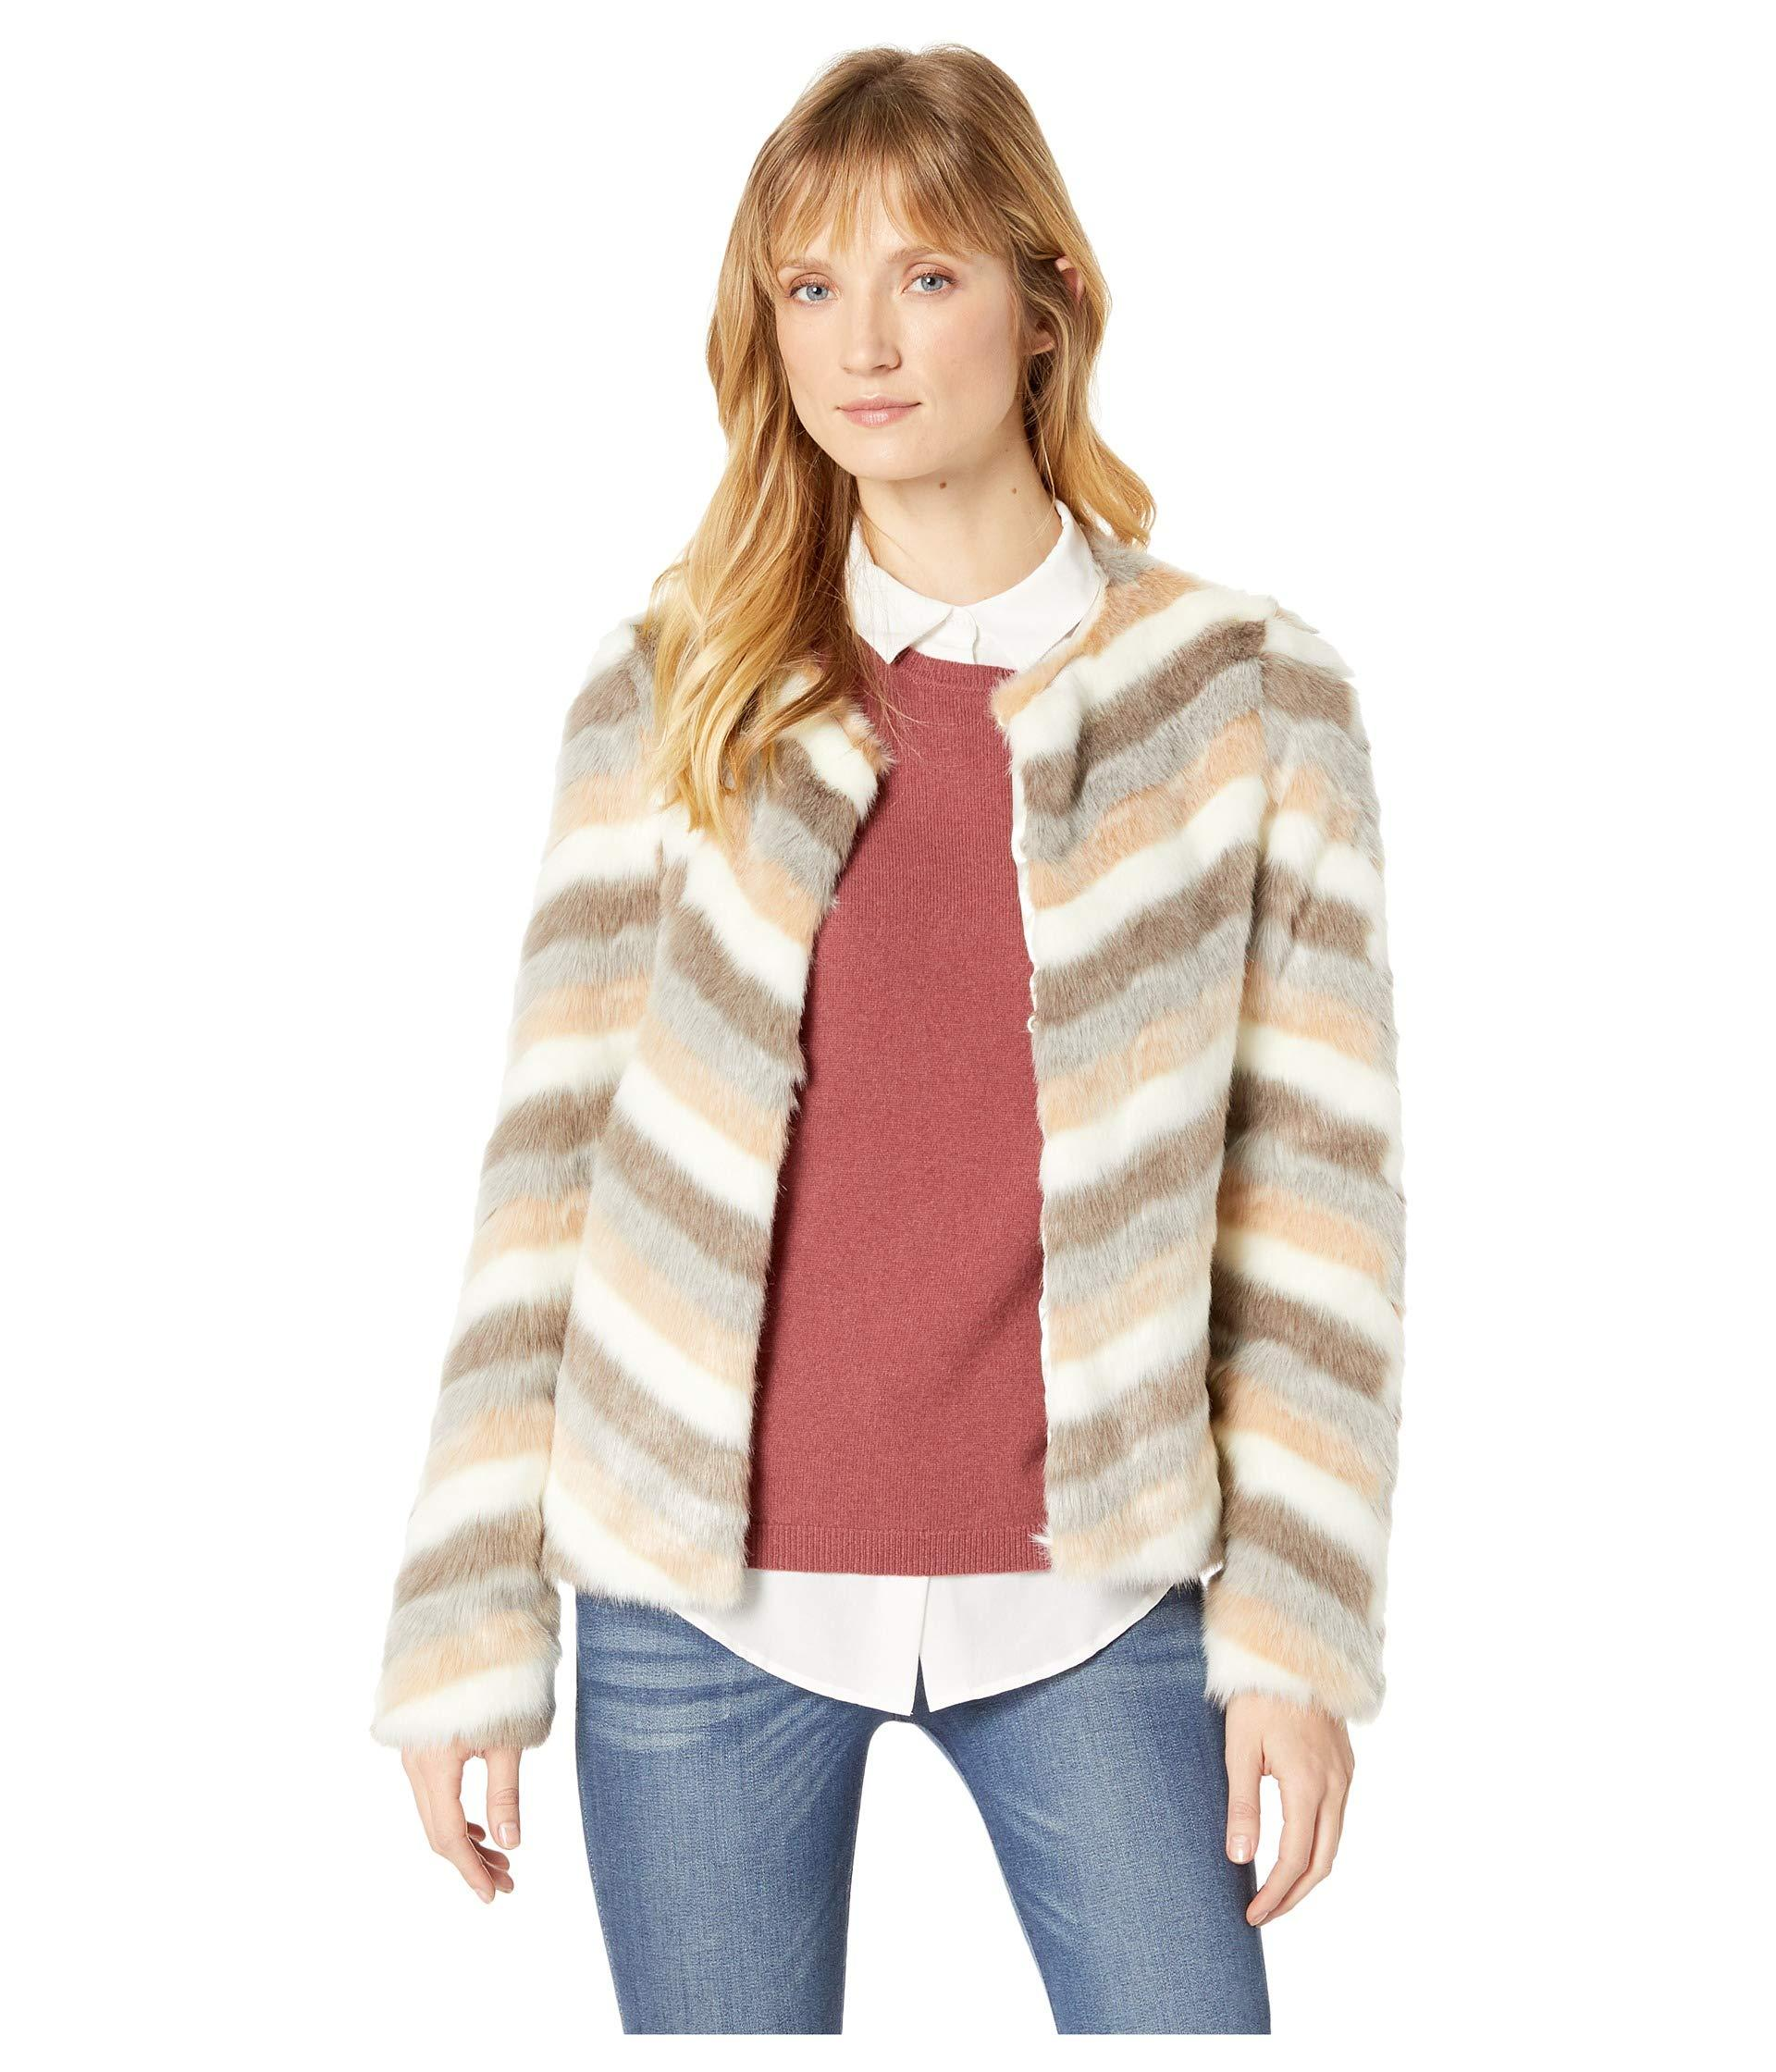 70c1c9f33018 Lyst - Calvin Klein Chevron Faux Fur Jacket in Natural - Save 39%